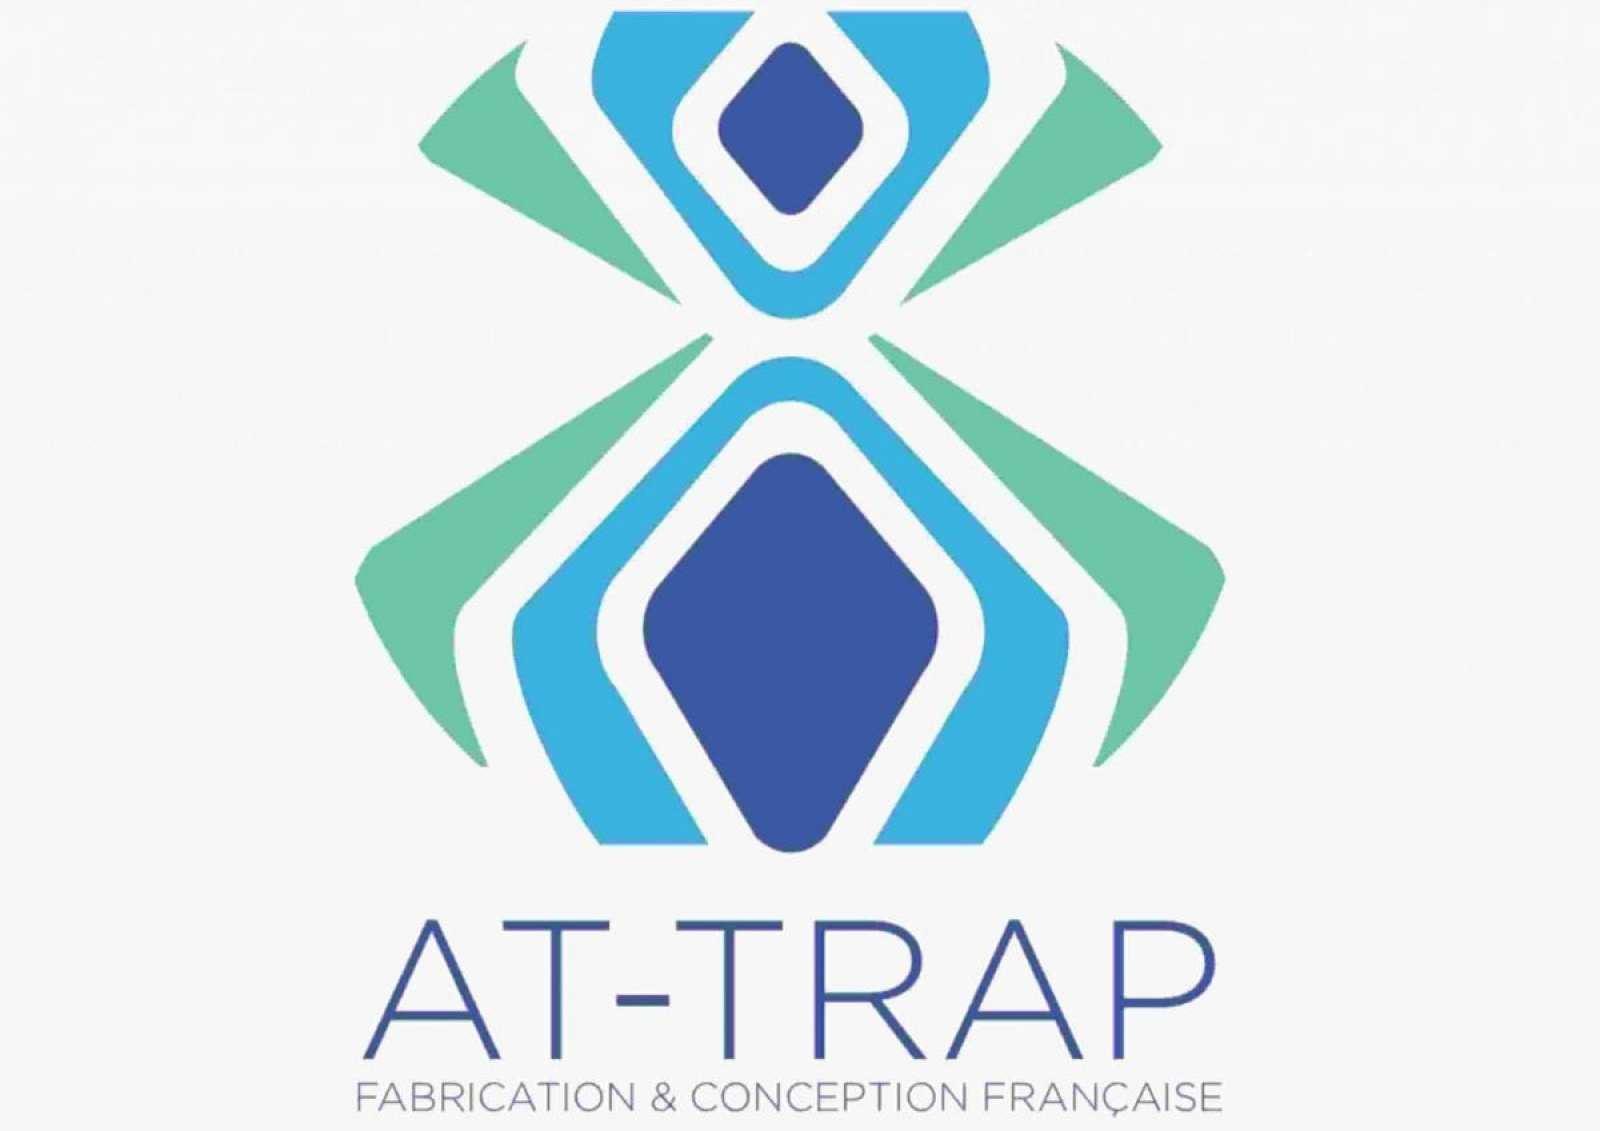 Logo de la marque et invention At-Trap